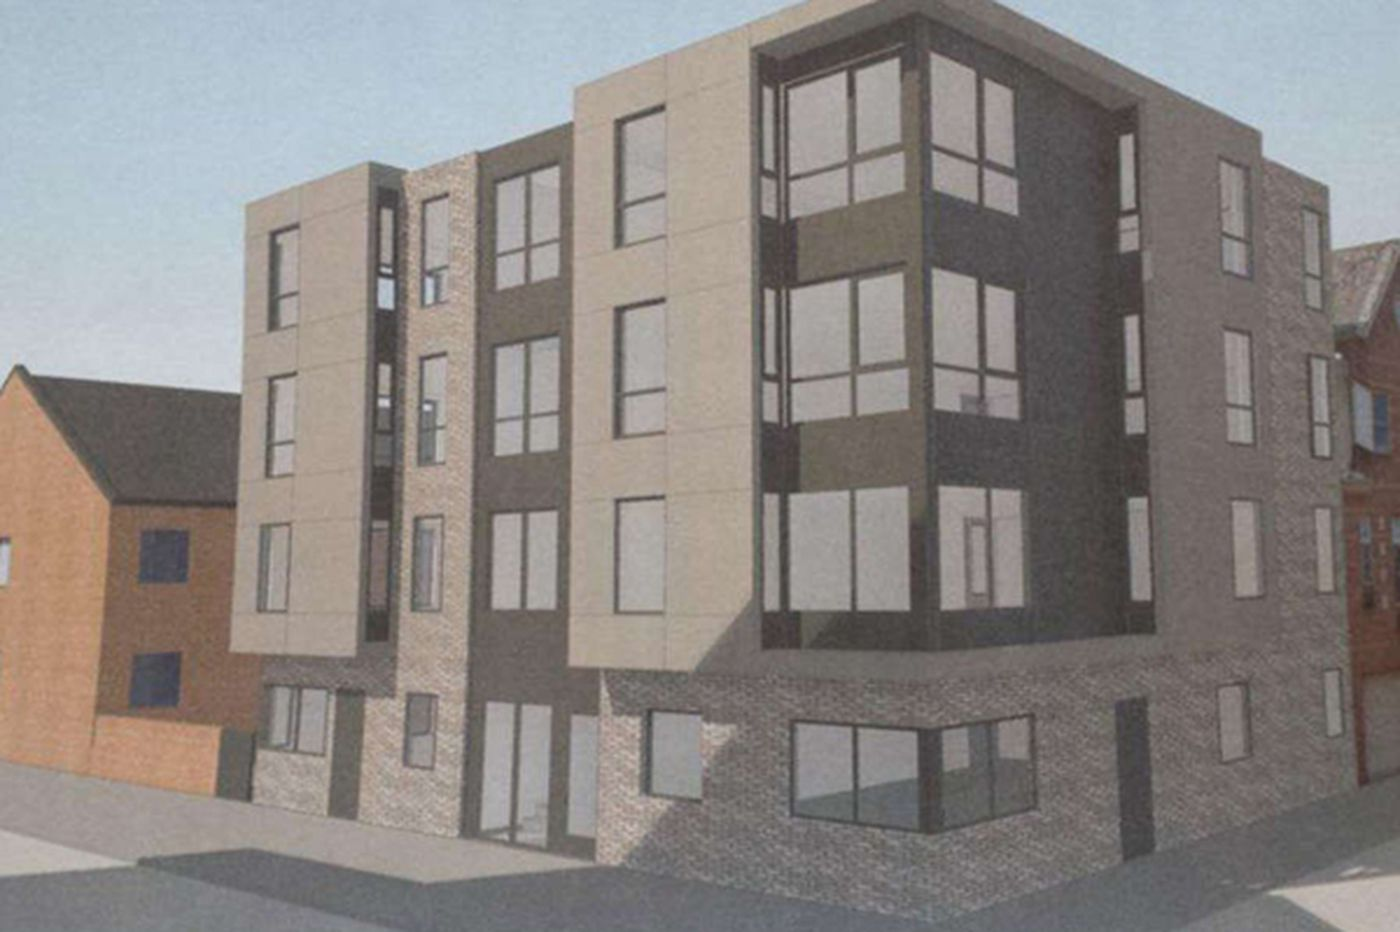 Mother Bethel members pray for historic foresight over apartment proposal